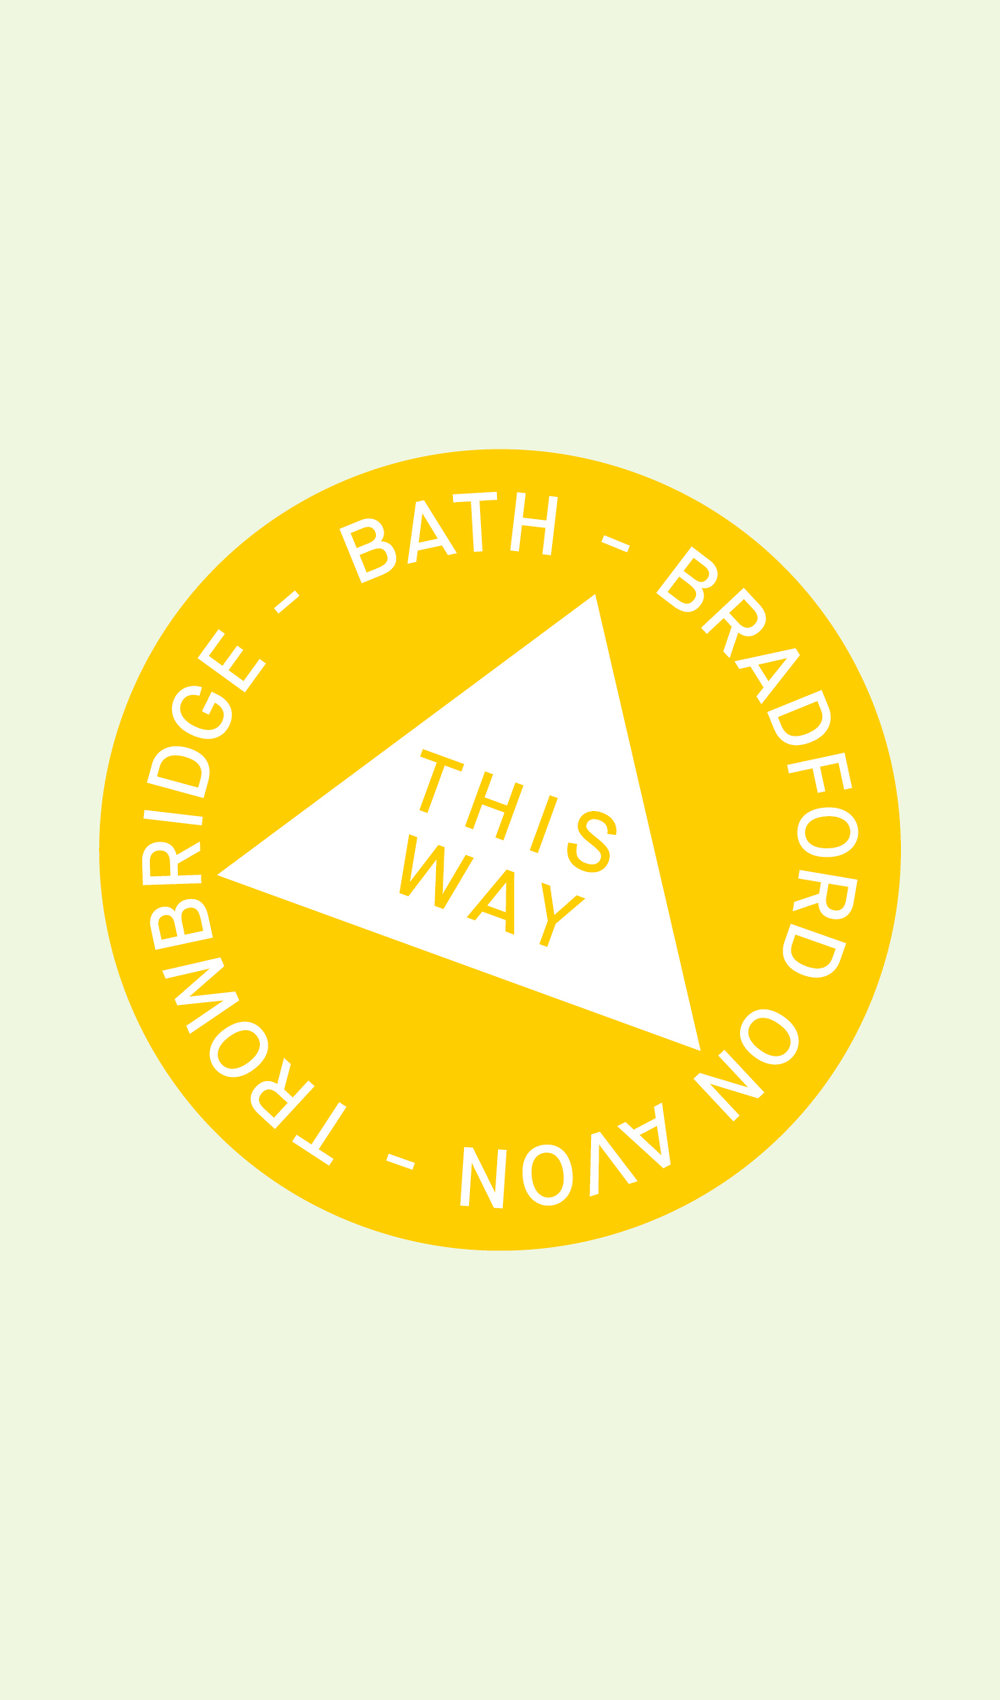 Bath to Trowbridge Map